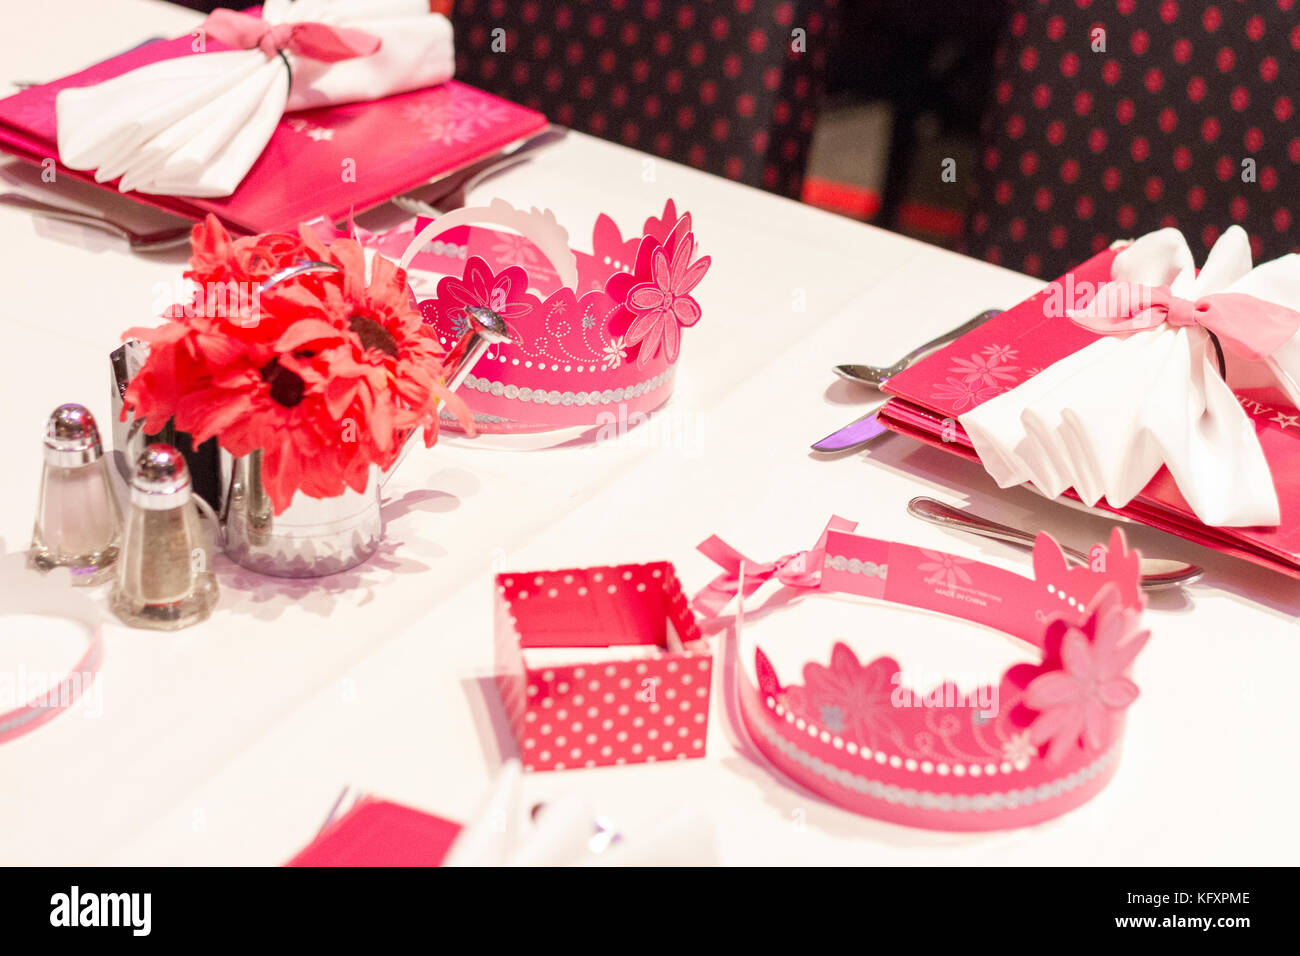 New York City - November 19, 2015: Close up of the table set for a ...